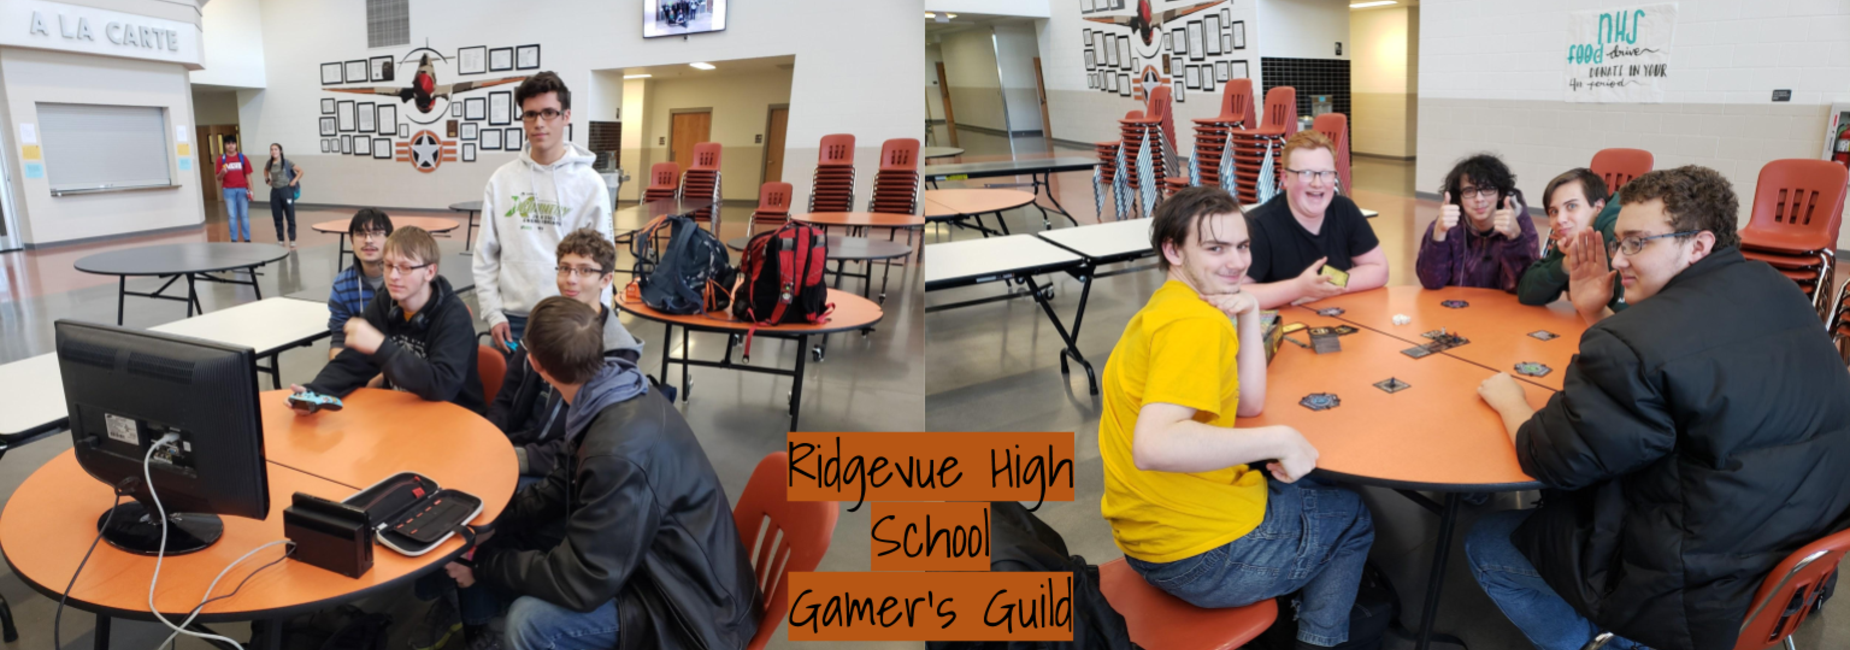 Students Gamers